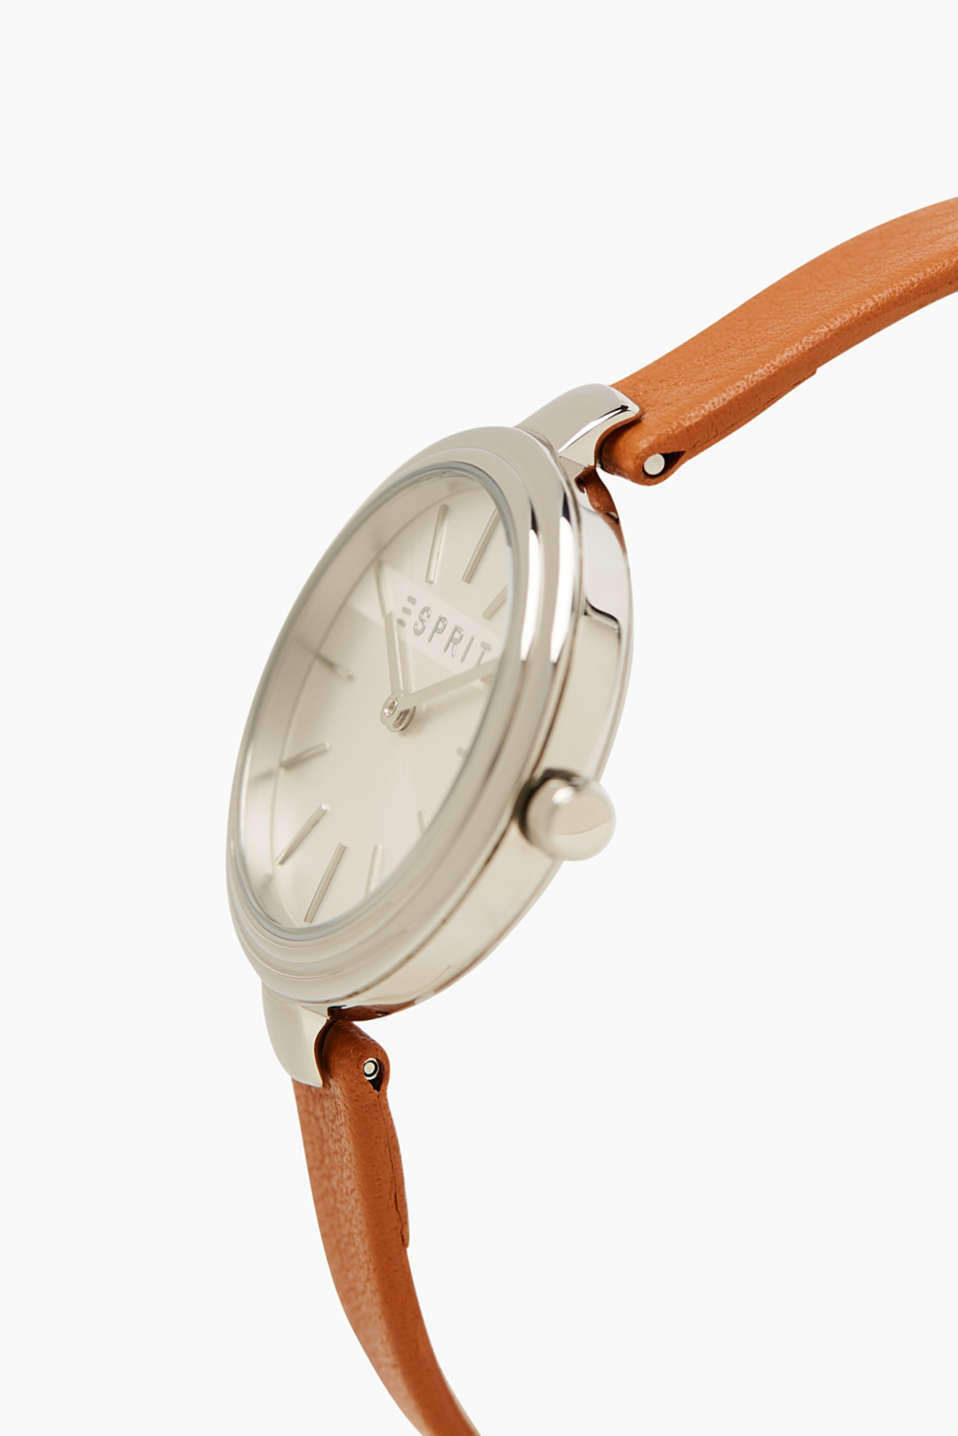 Stainless steel watch, narrow leather strap